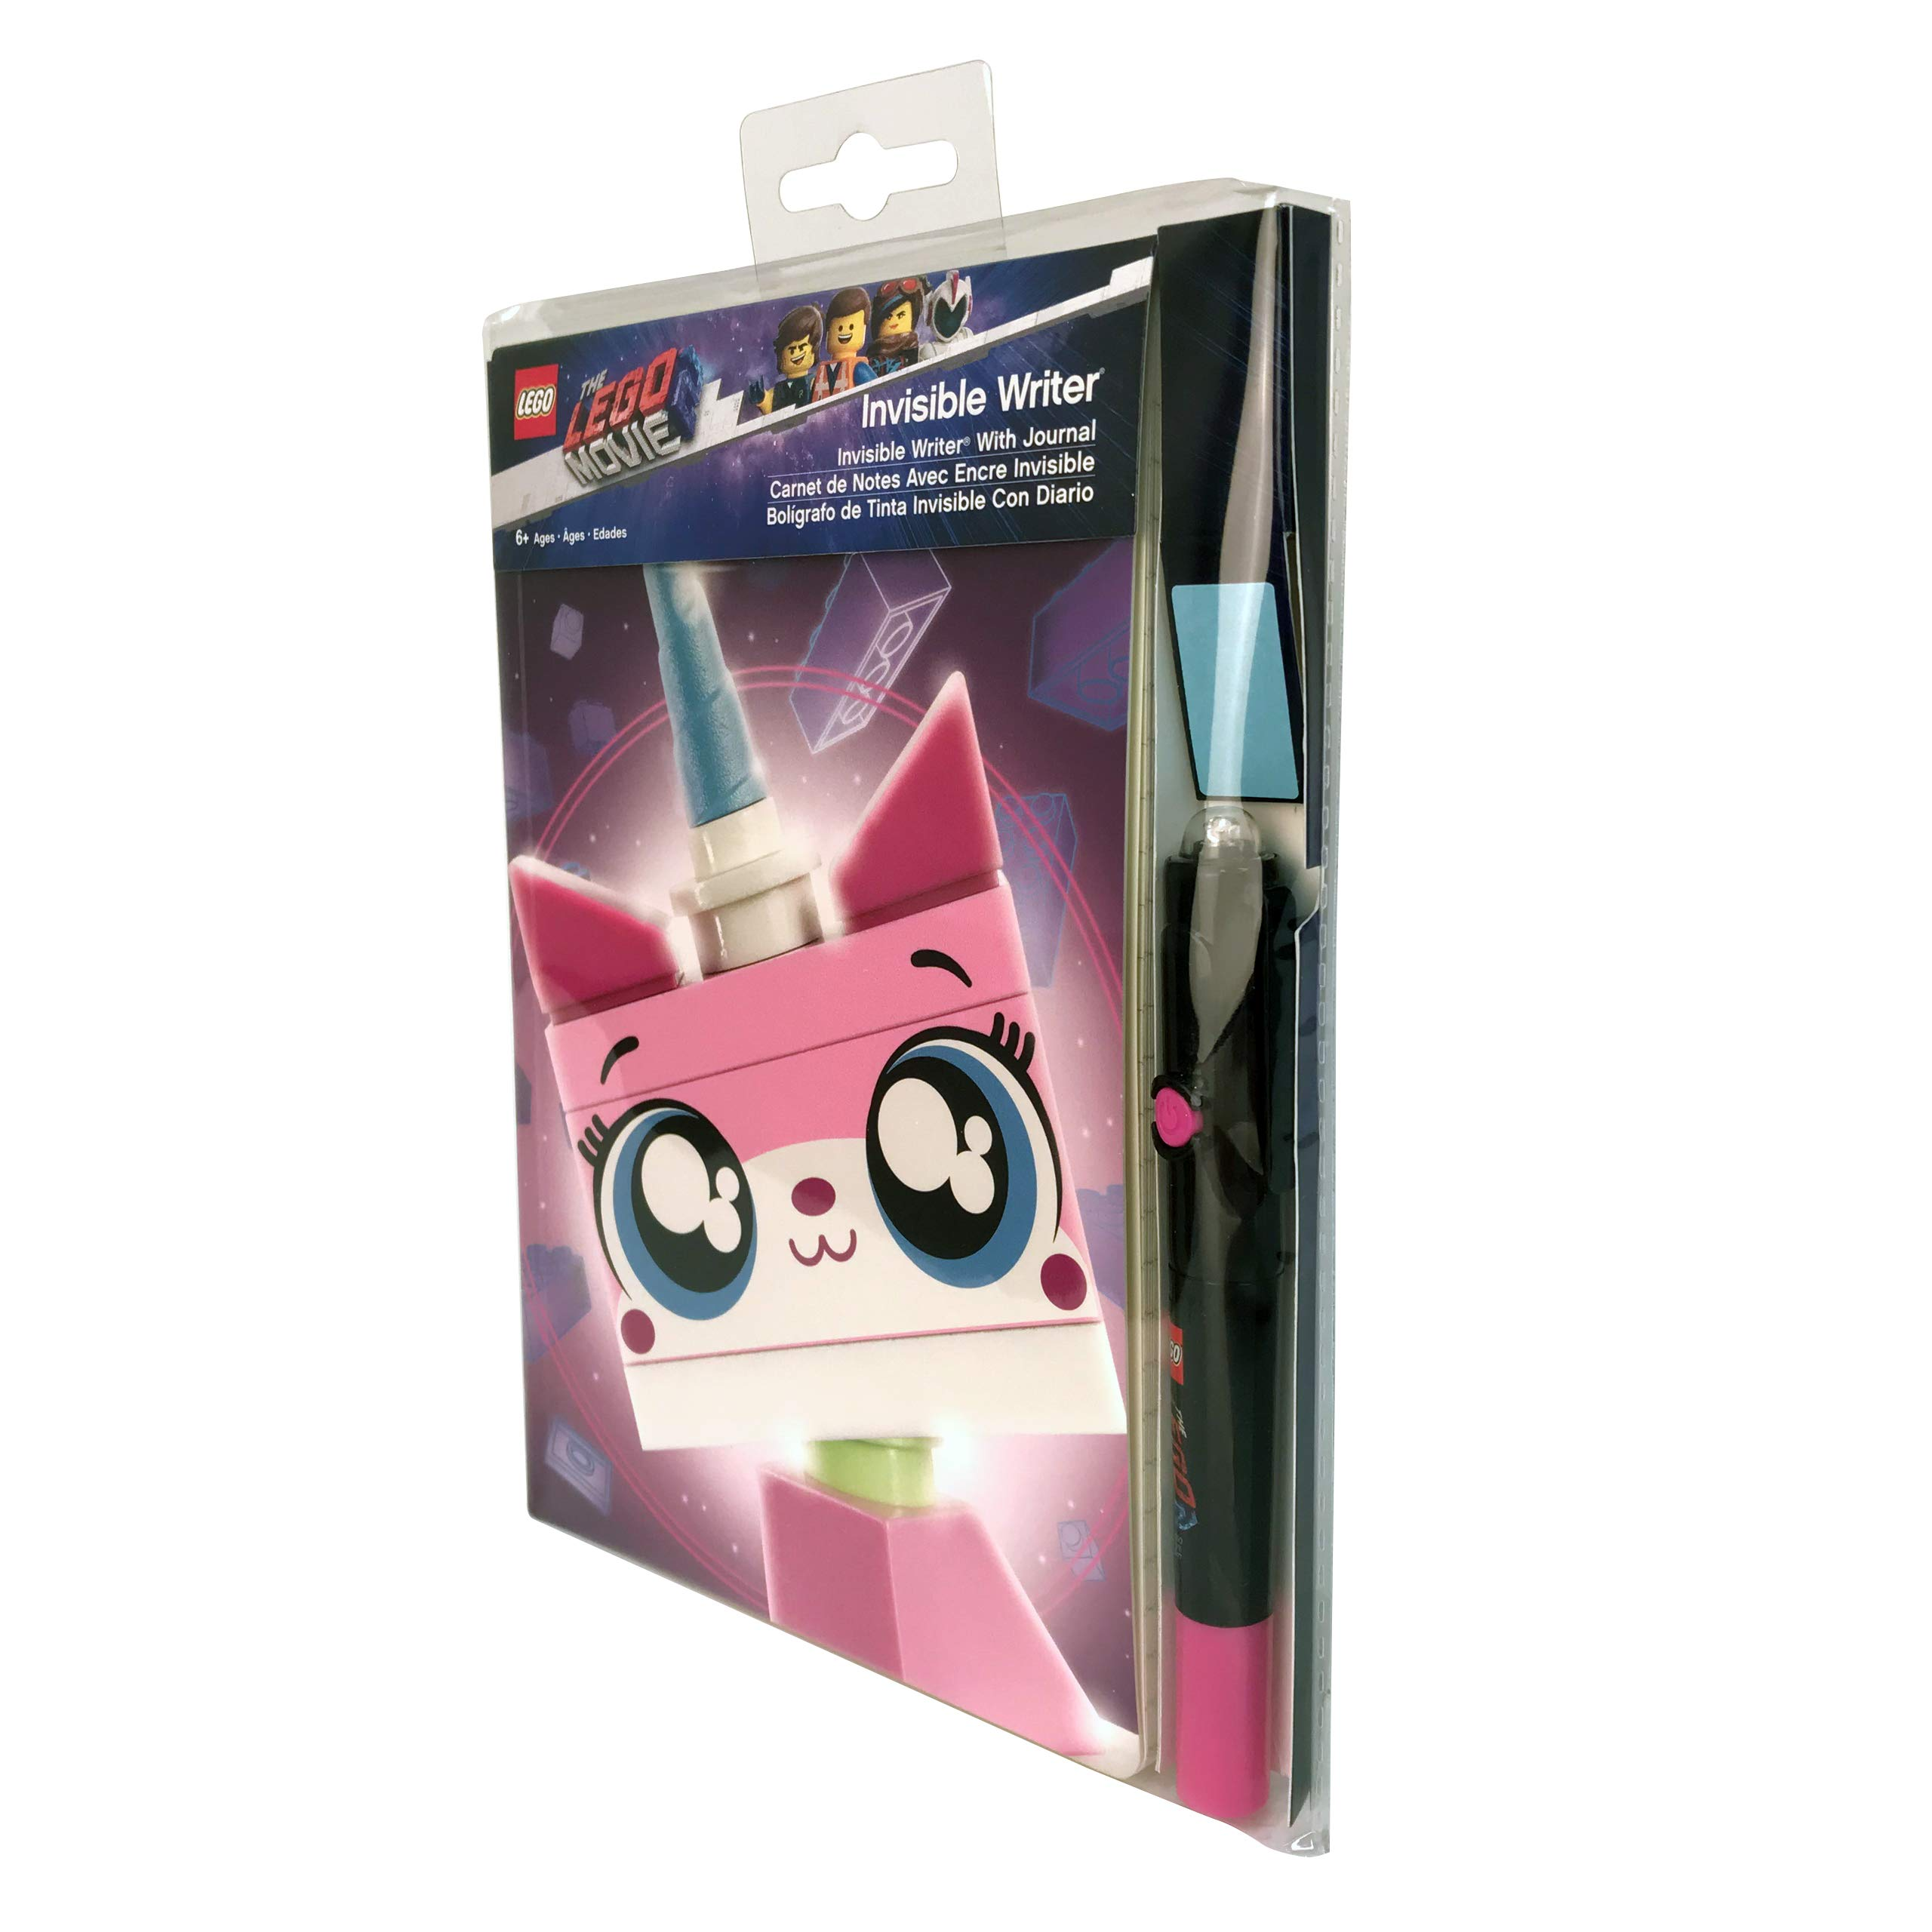 LEGO The Movie 2 Unikitty Invisible Writer with Journal by LEGO (Image #4)